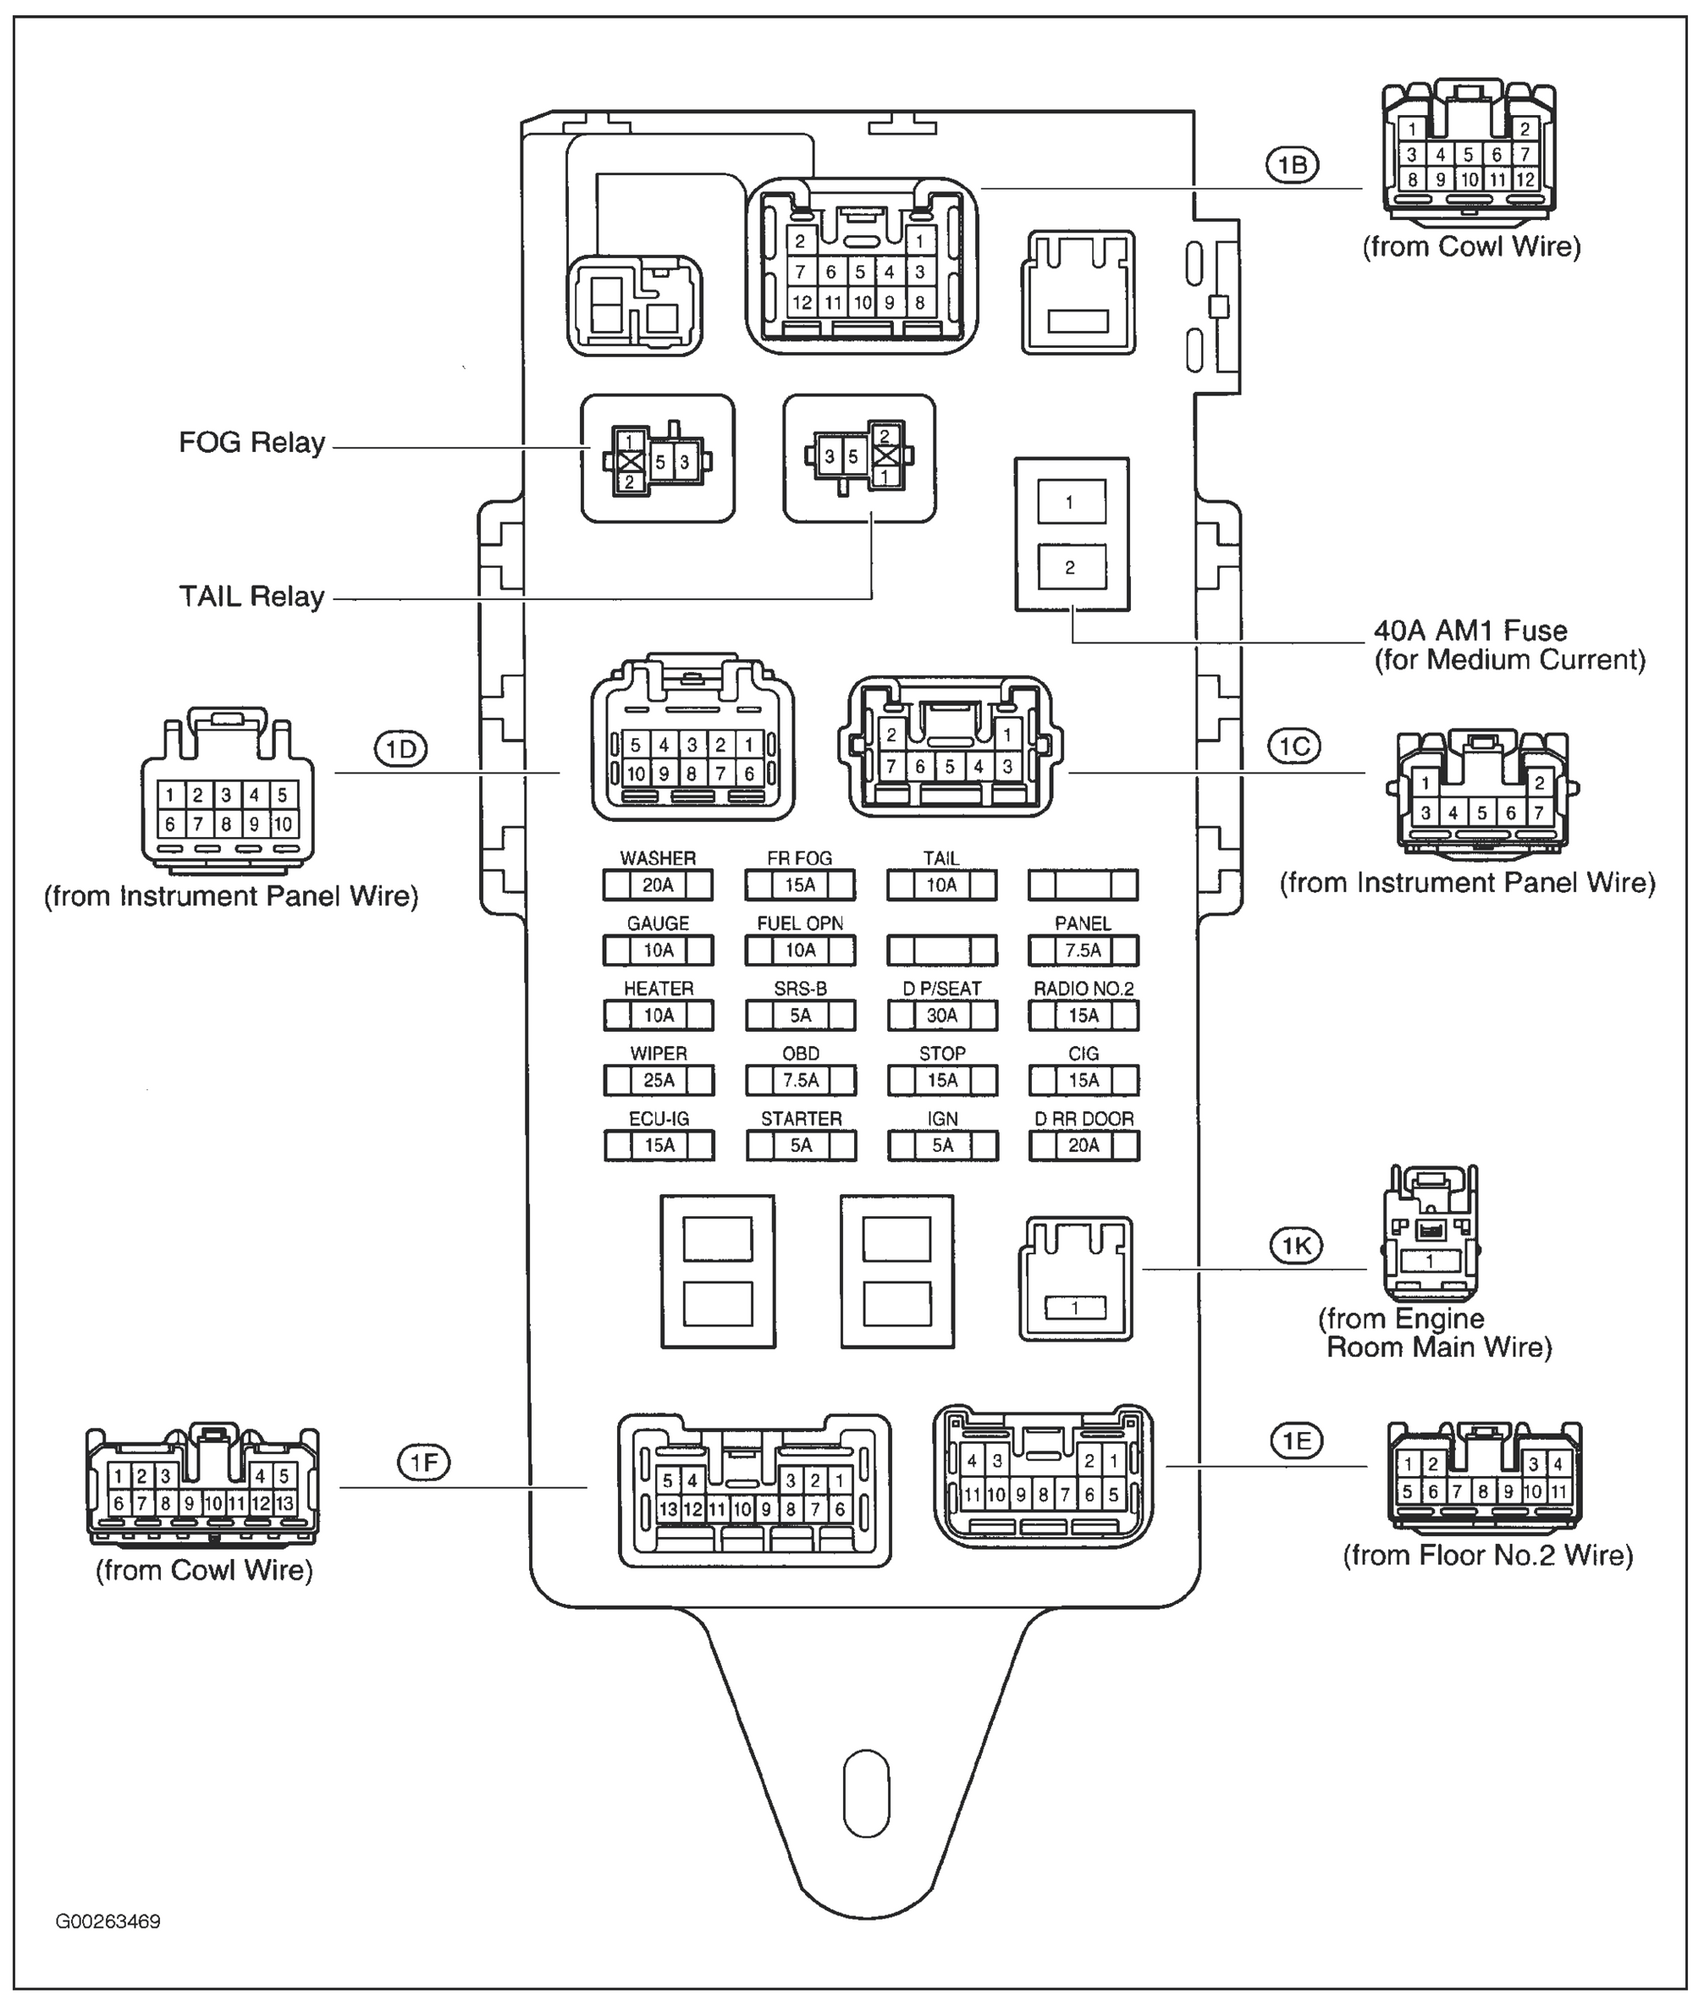 Renault Clio 98 Fuse Box Wiring Diagram Guide Electrical Diagramsrenault Simple Peugeot